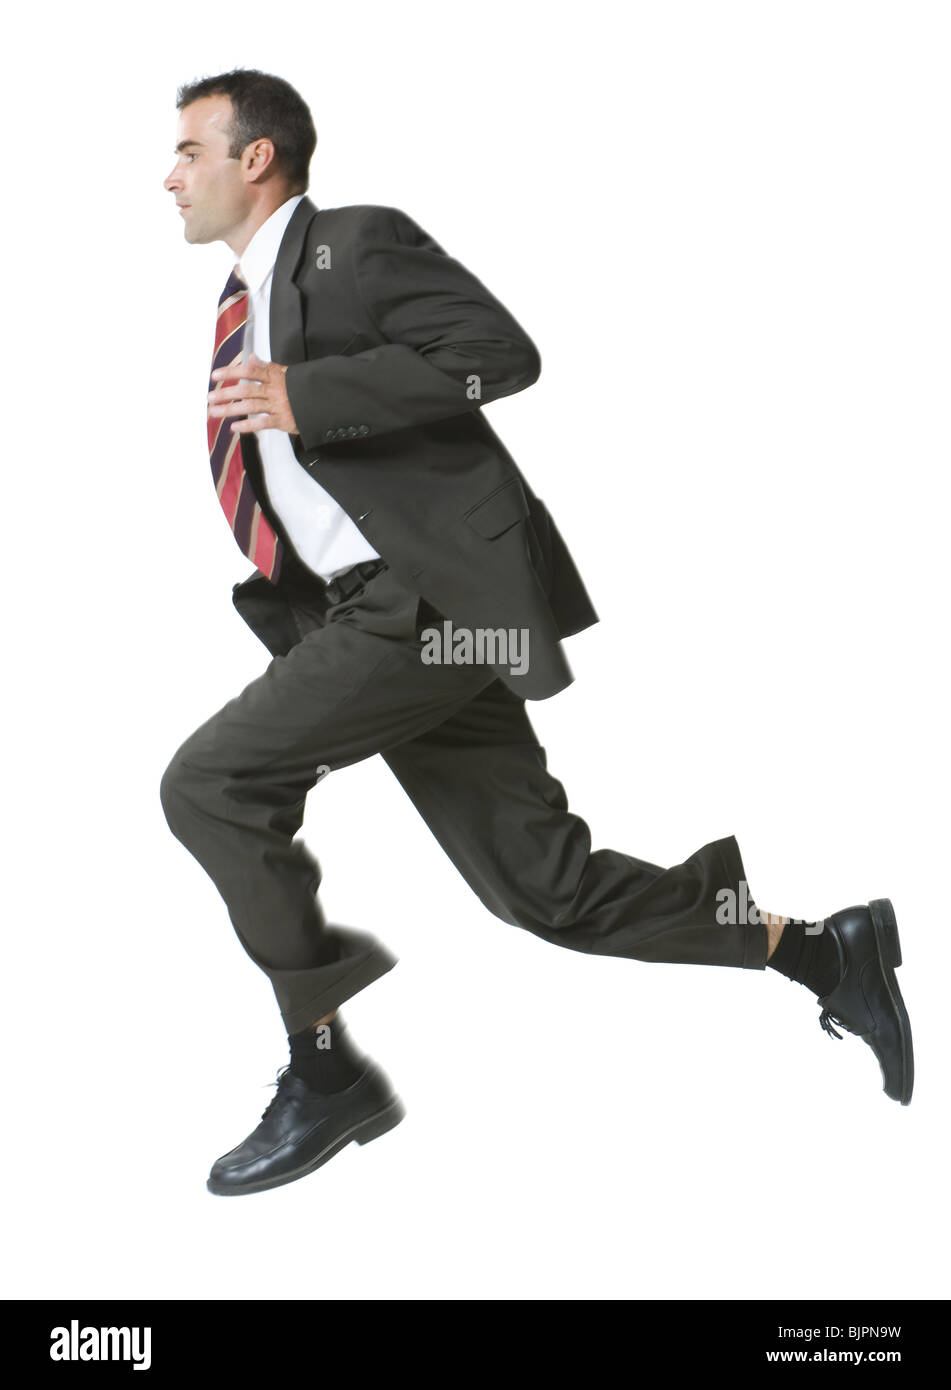 Man running in three piece suit - Stock Image